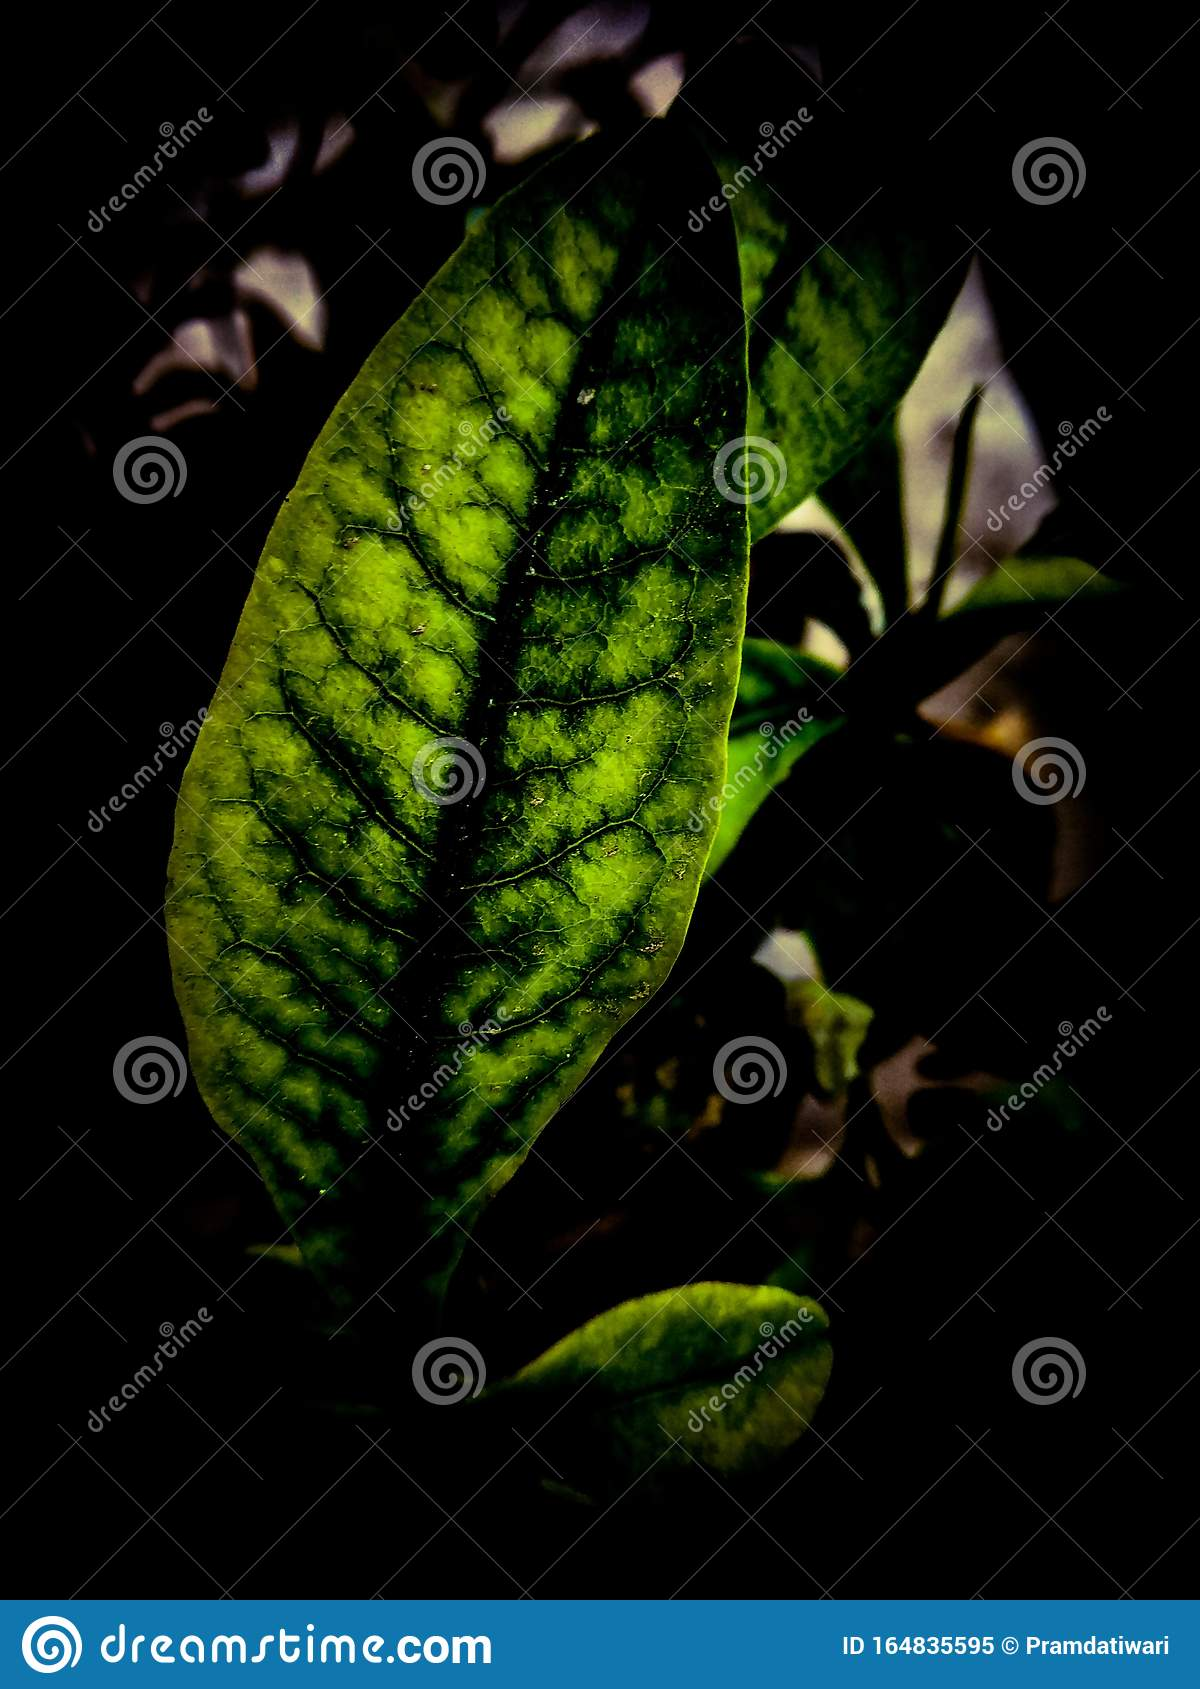 Sky Flower Leaf In Dark Background Faded For Wallpaper Stock Image Image Of Clipart Background 164835595